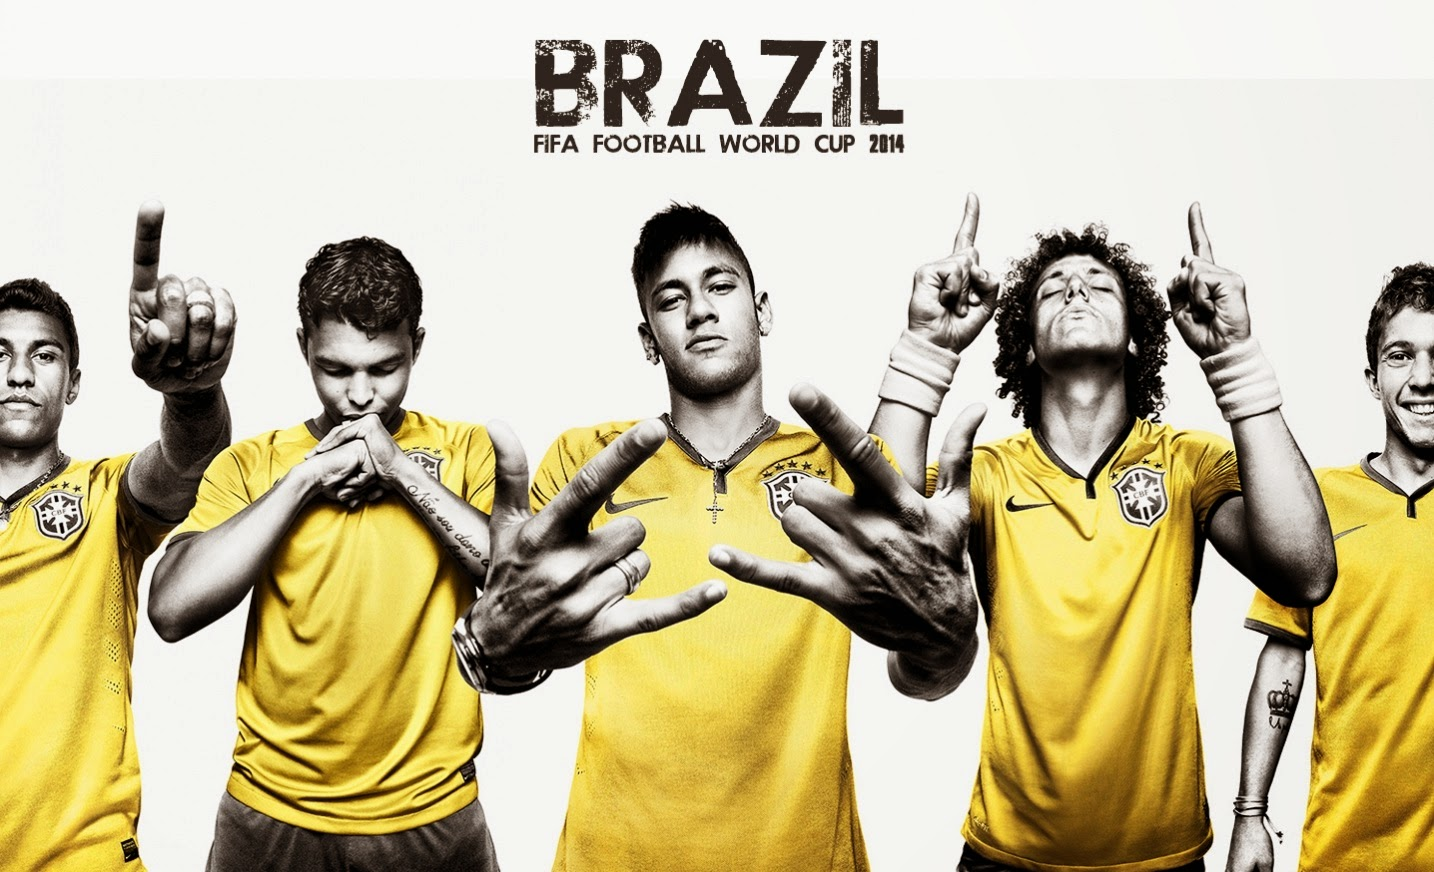 words celebrities wallpapers: check out neymar jr fifa world cup